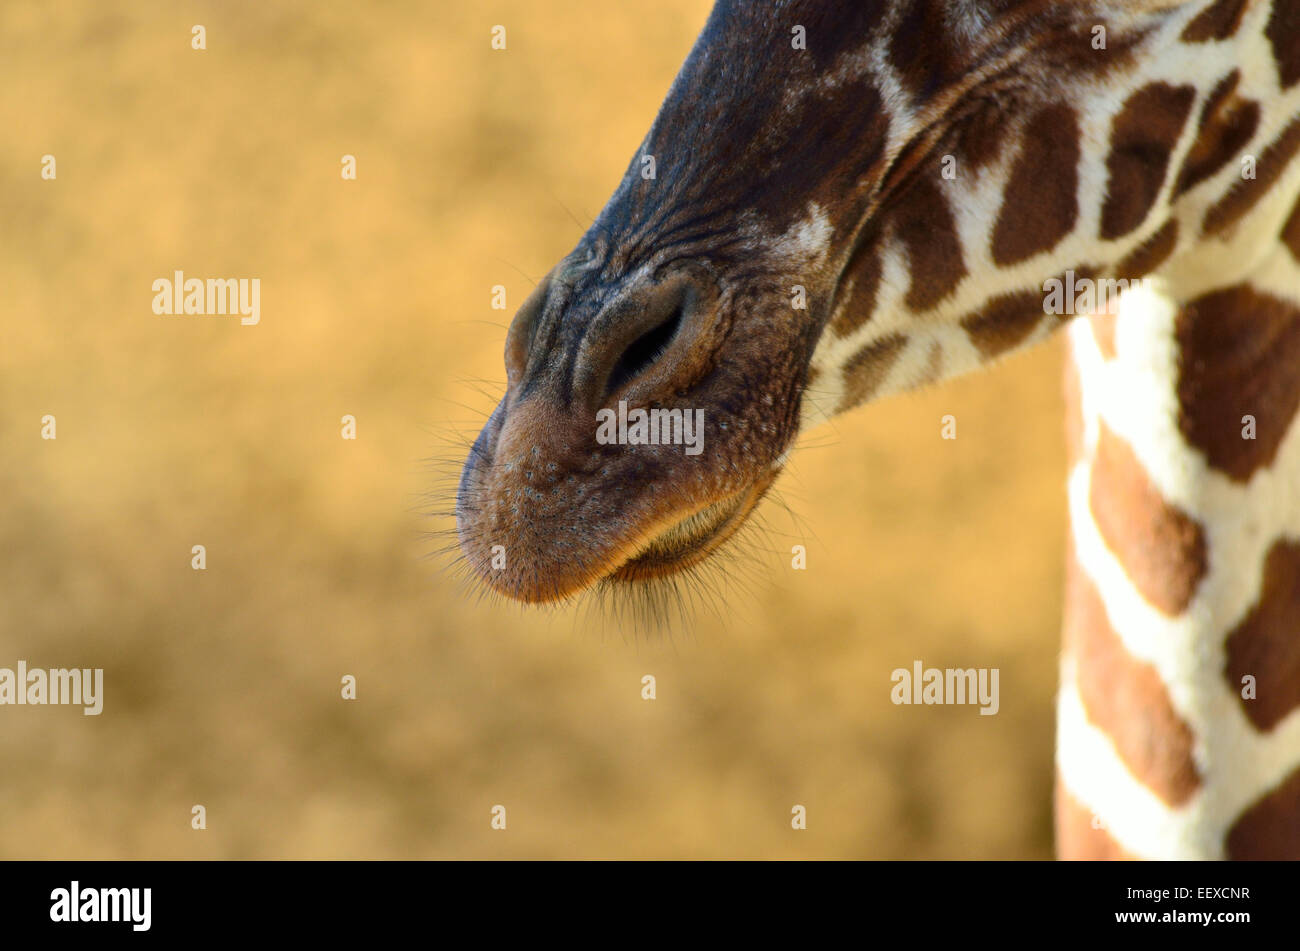 Mouth & nostrils of a Giraffe - Stock Image